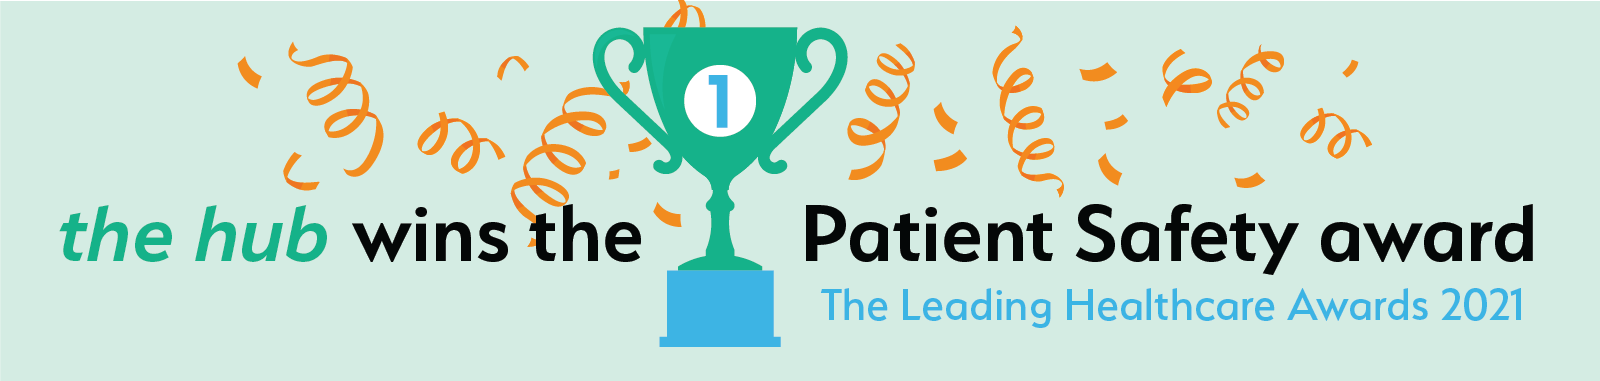 the hub is an award winning platform to share learning for patient safety